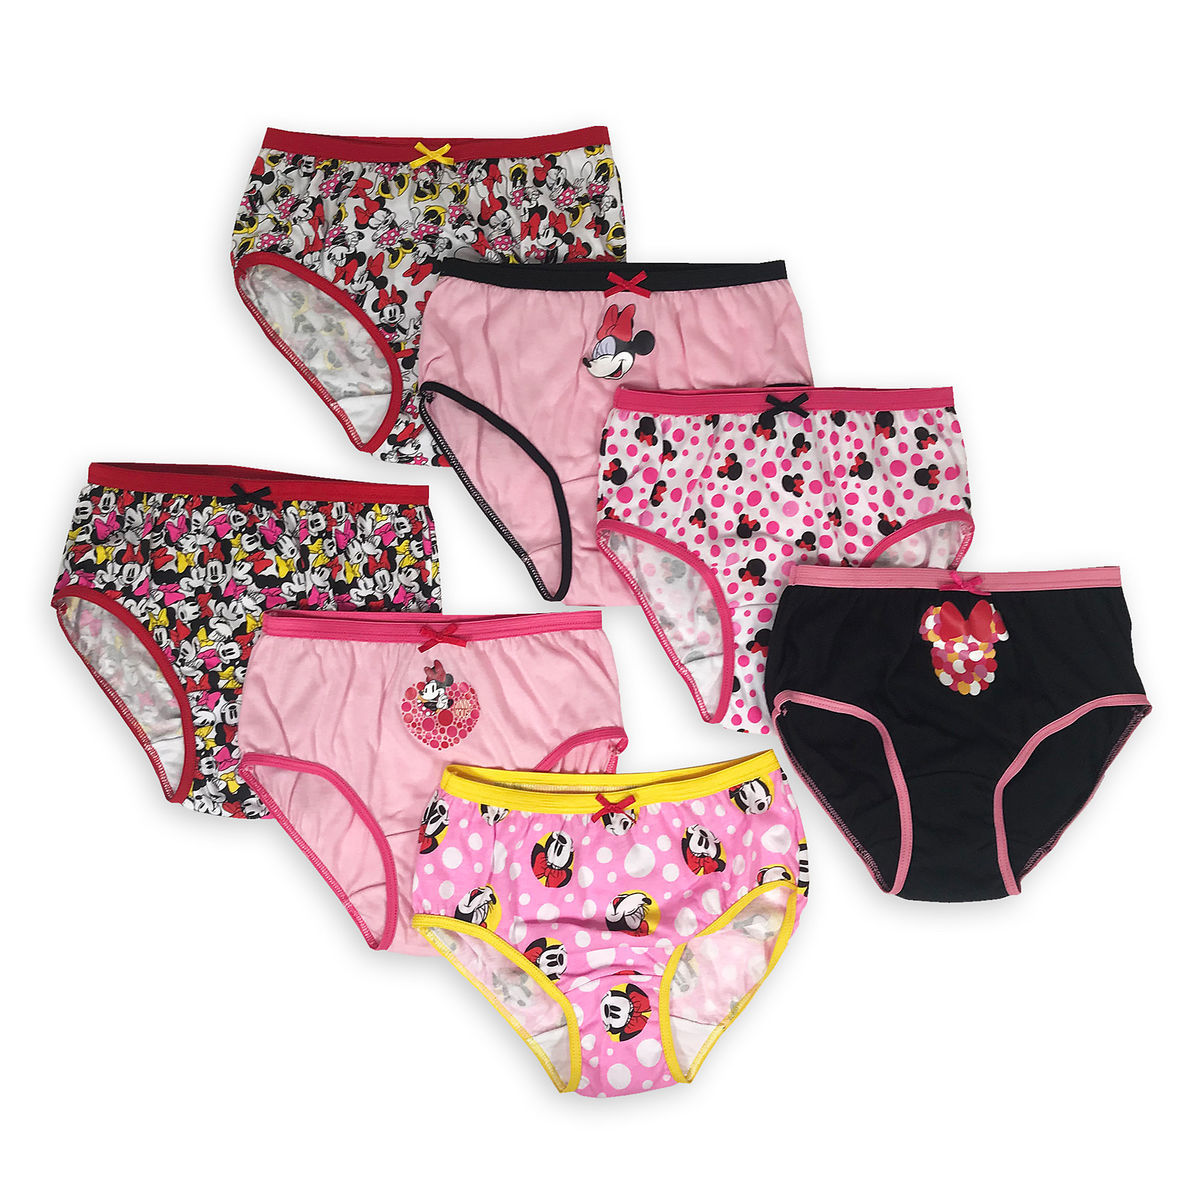 382e0038cdb6f Product Image of Minnie Mouse Underwear Set for Girls - 7-Pk   1